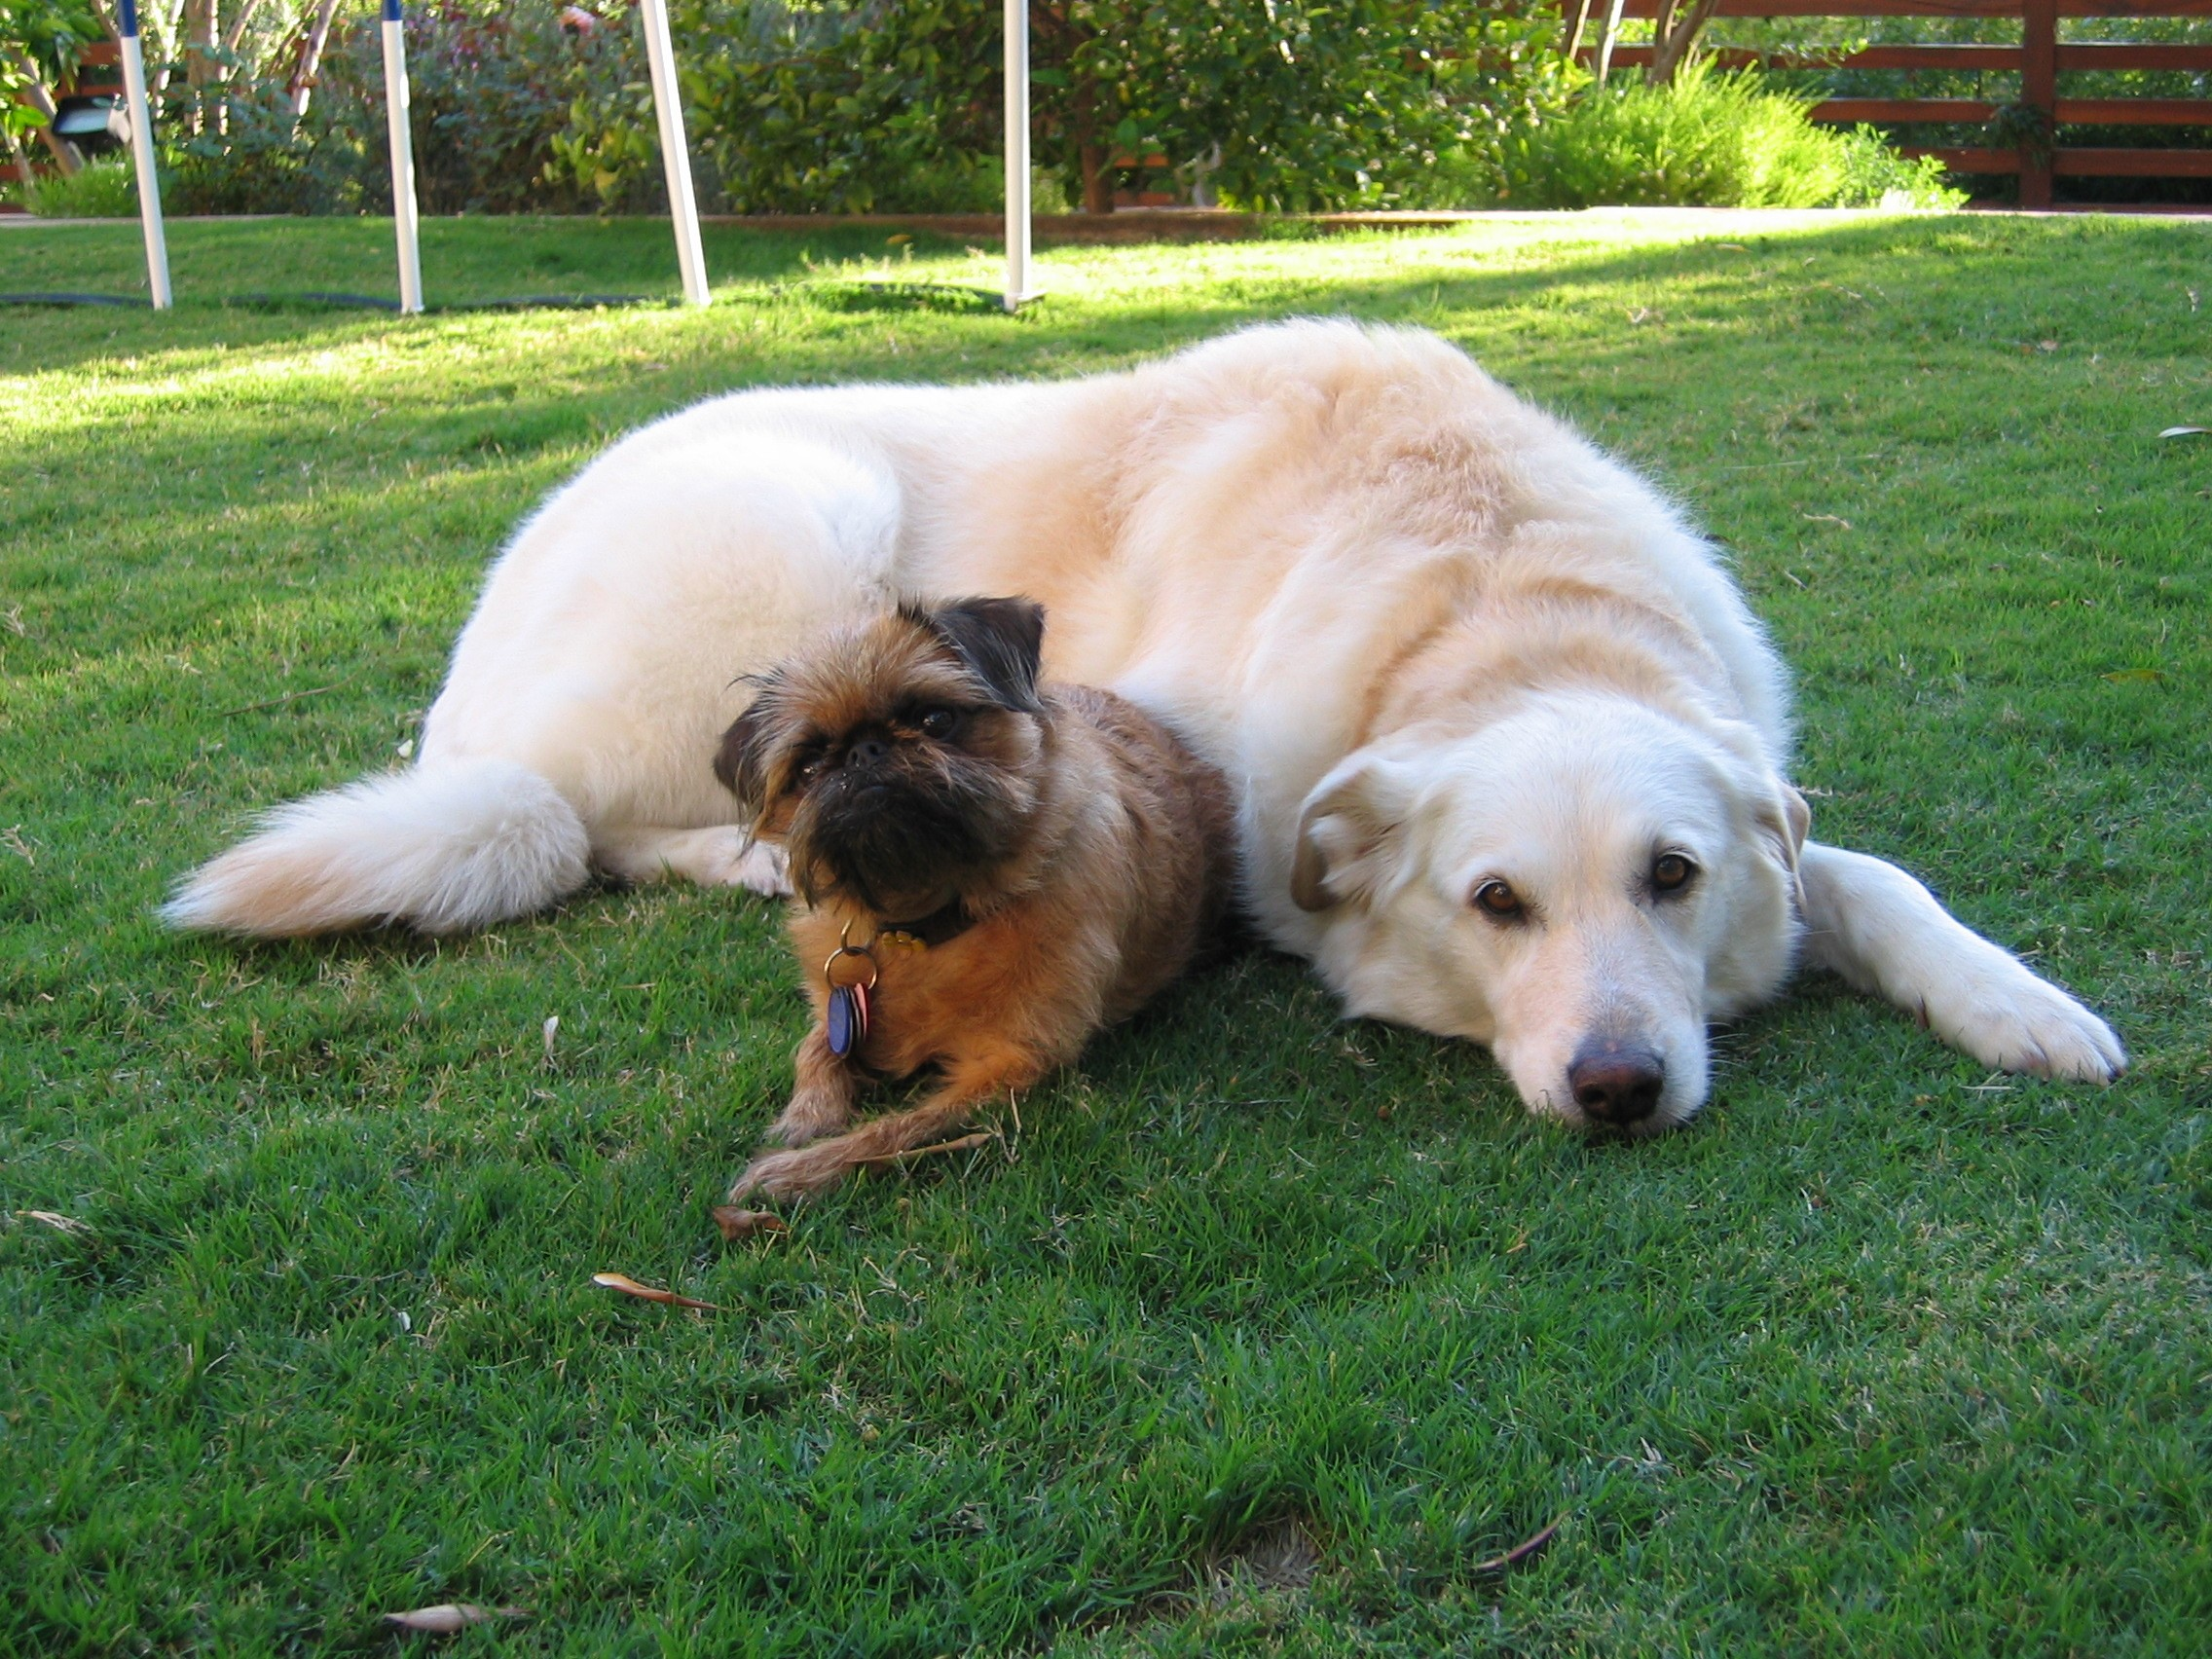 being dog obcesessed is� adventures in dog land